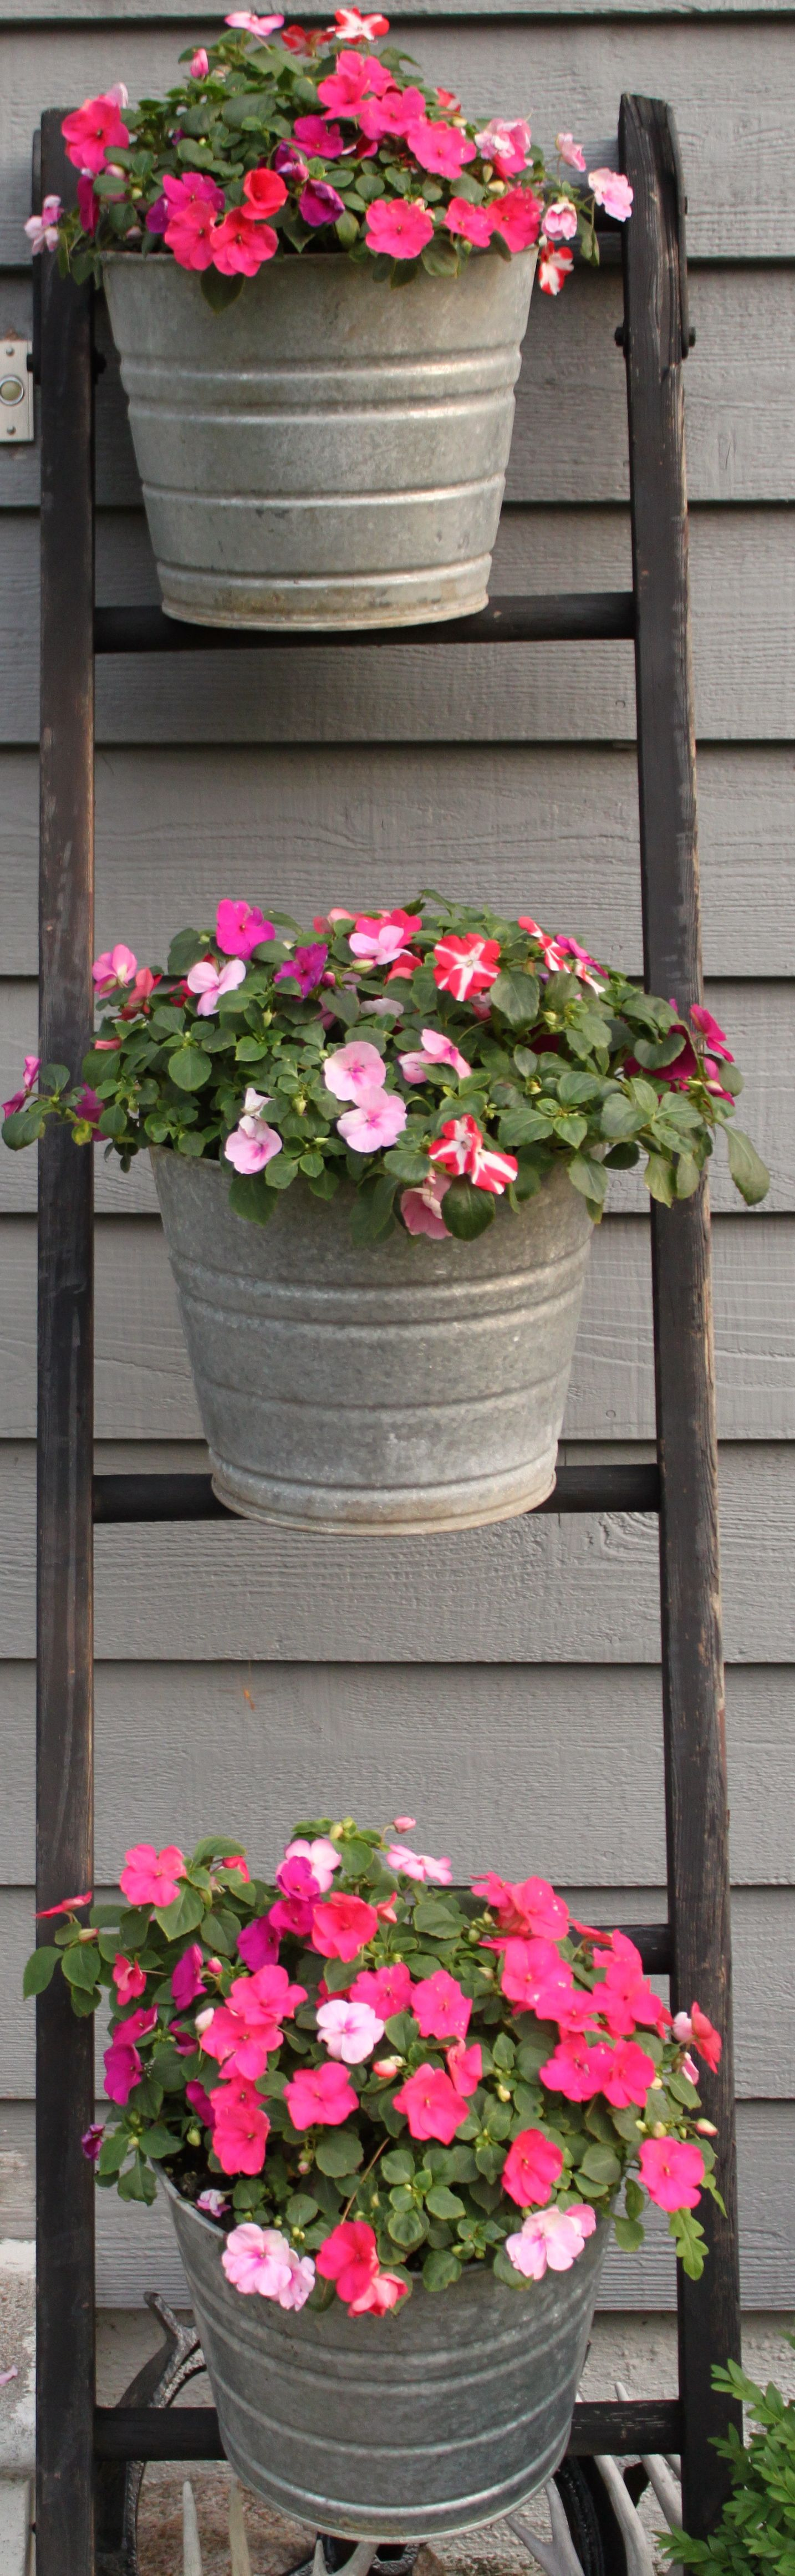 Antique Ladder And Galvanized Steel Buckets Filled With Flowers Flower Bucket Amazing Flowers Antique Ladder